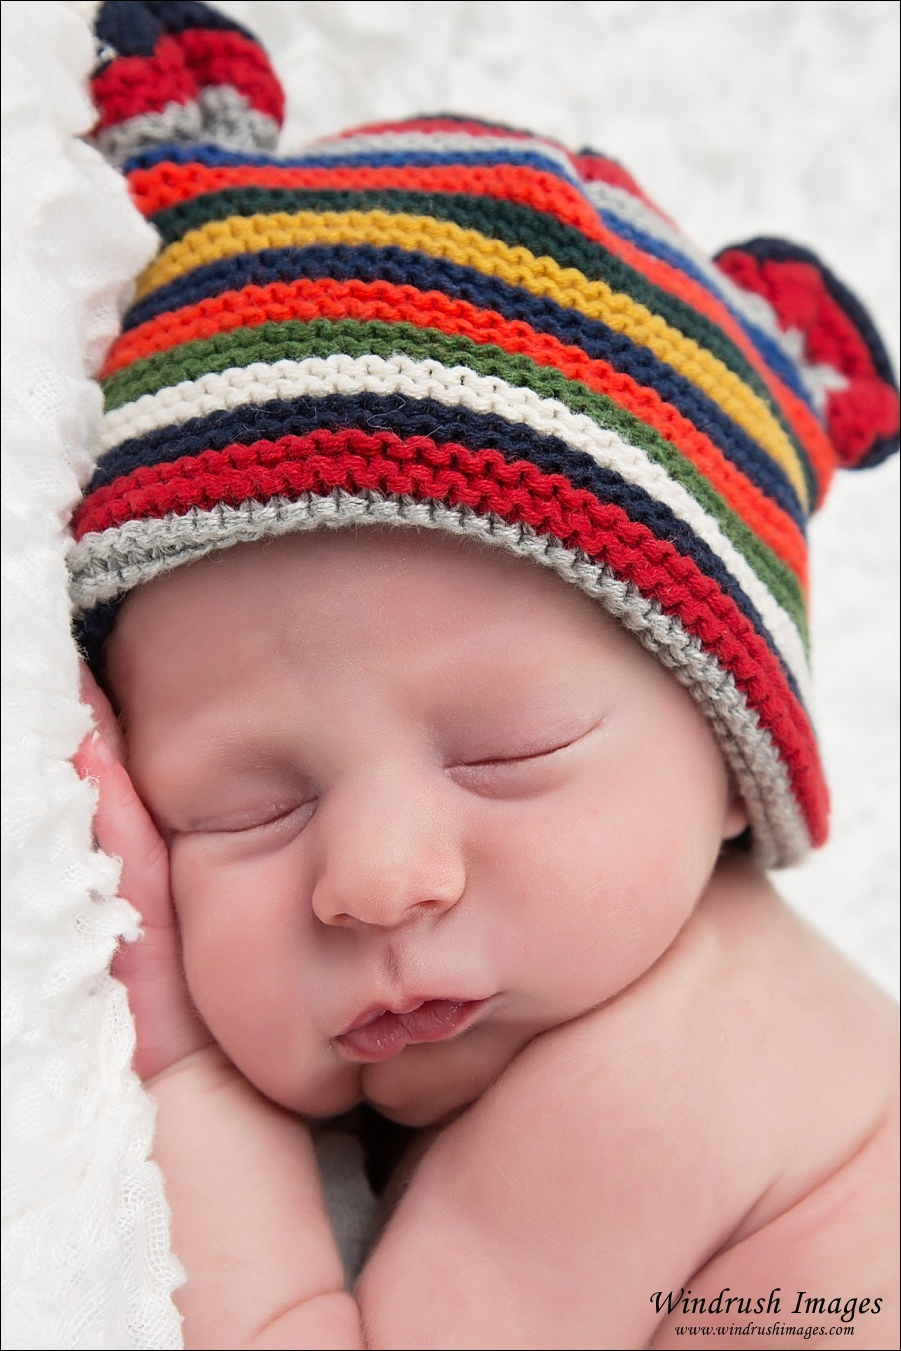 Sleeping newborn with teddy bear hat in Calgary